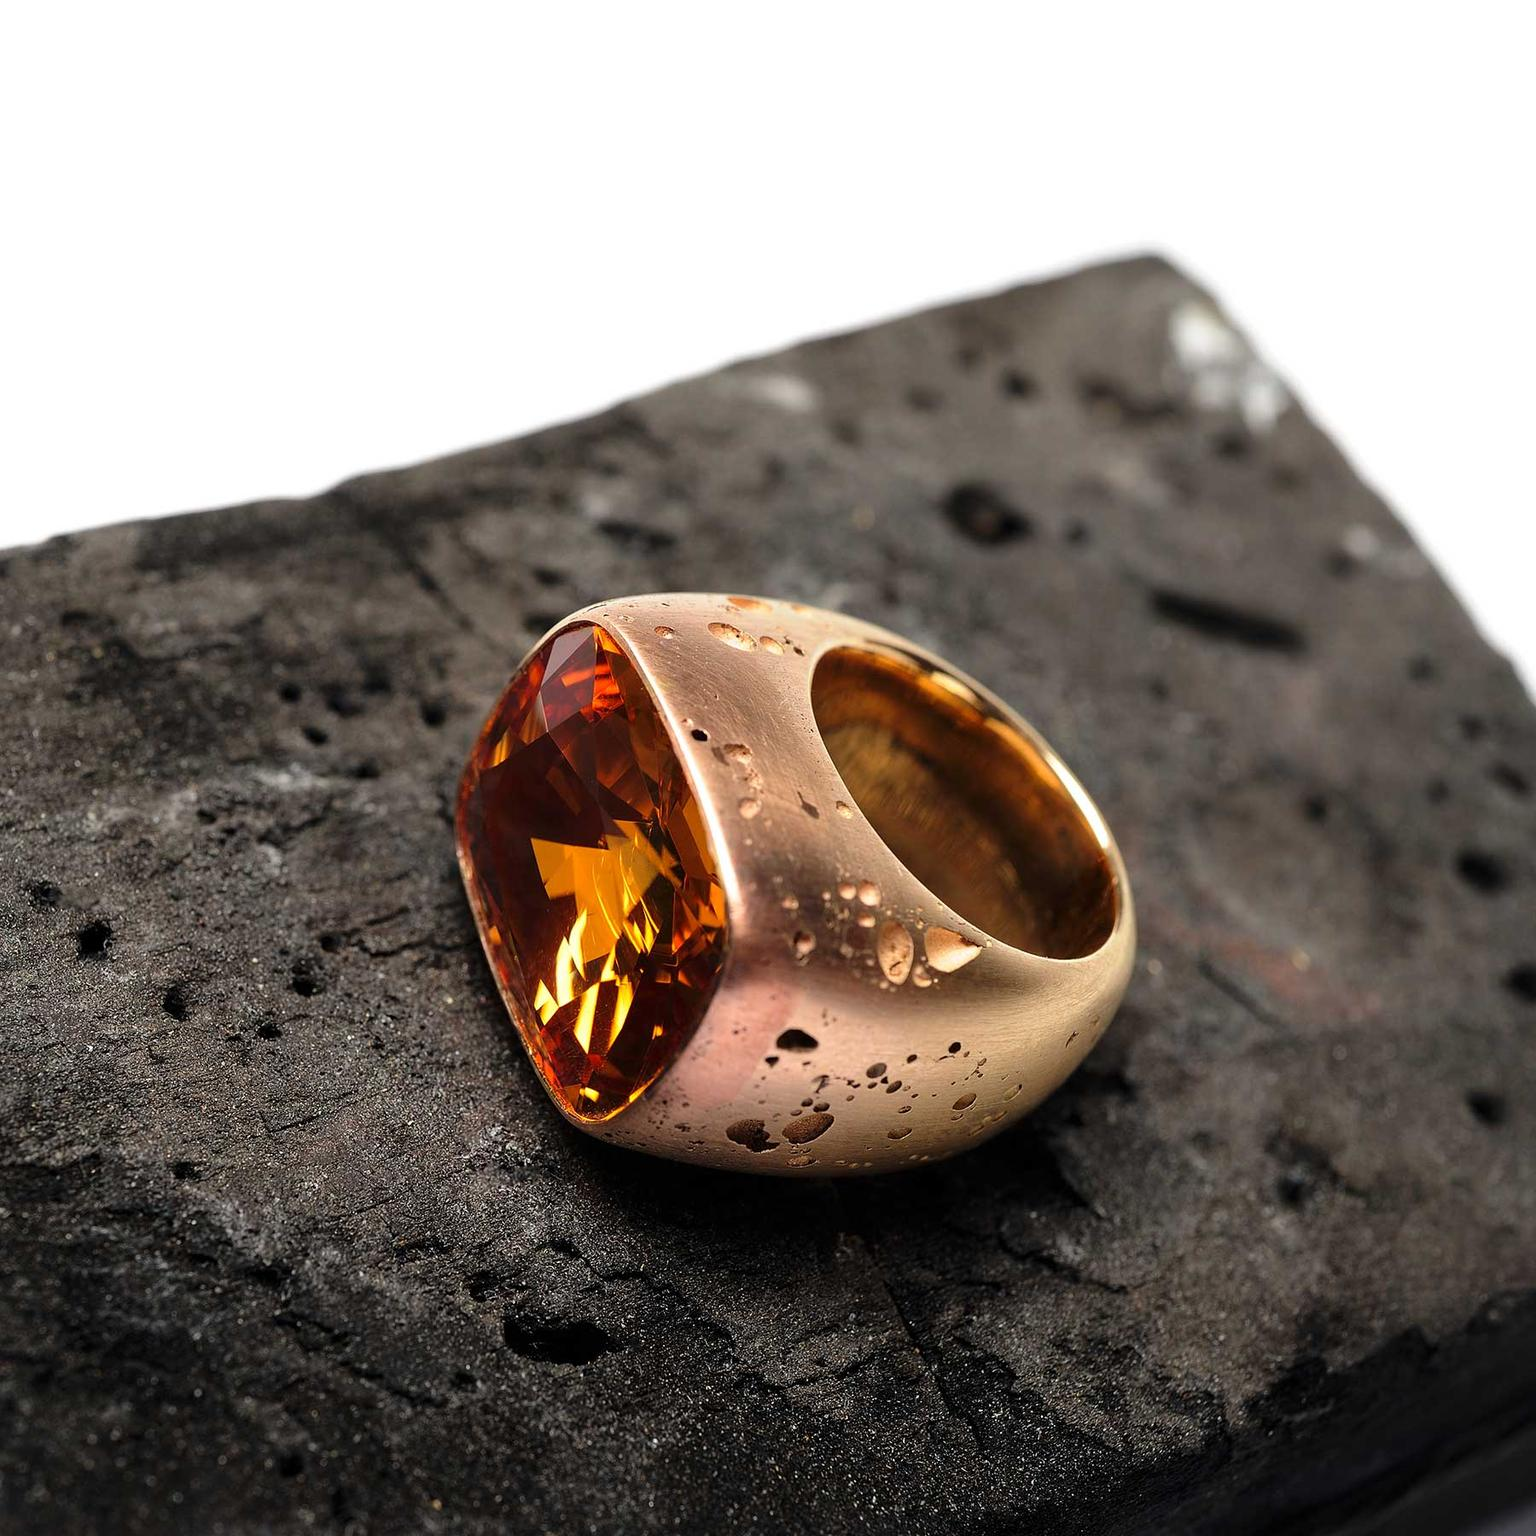 Hemmerle topaz ring in pink gold and copper